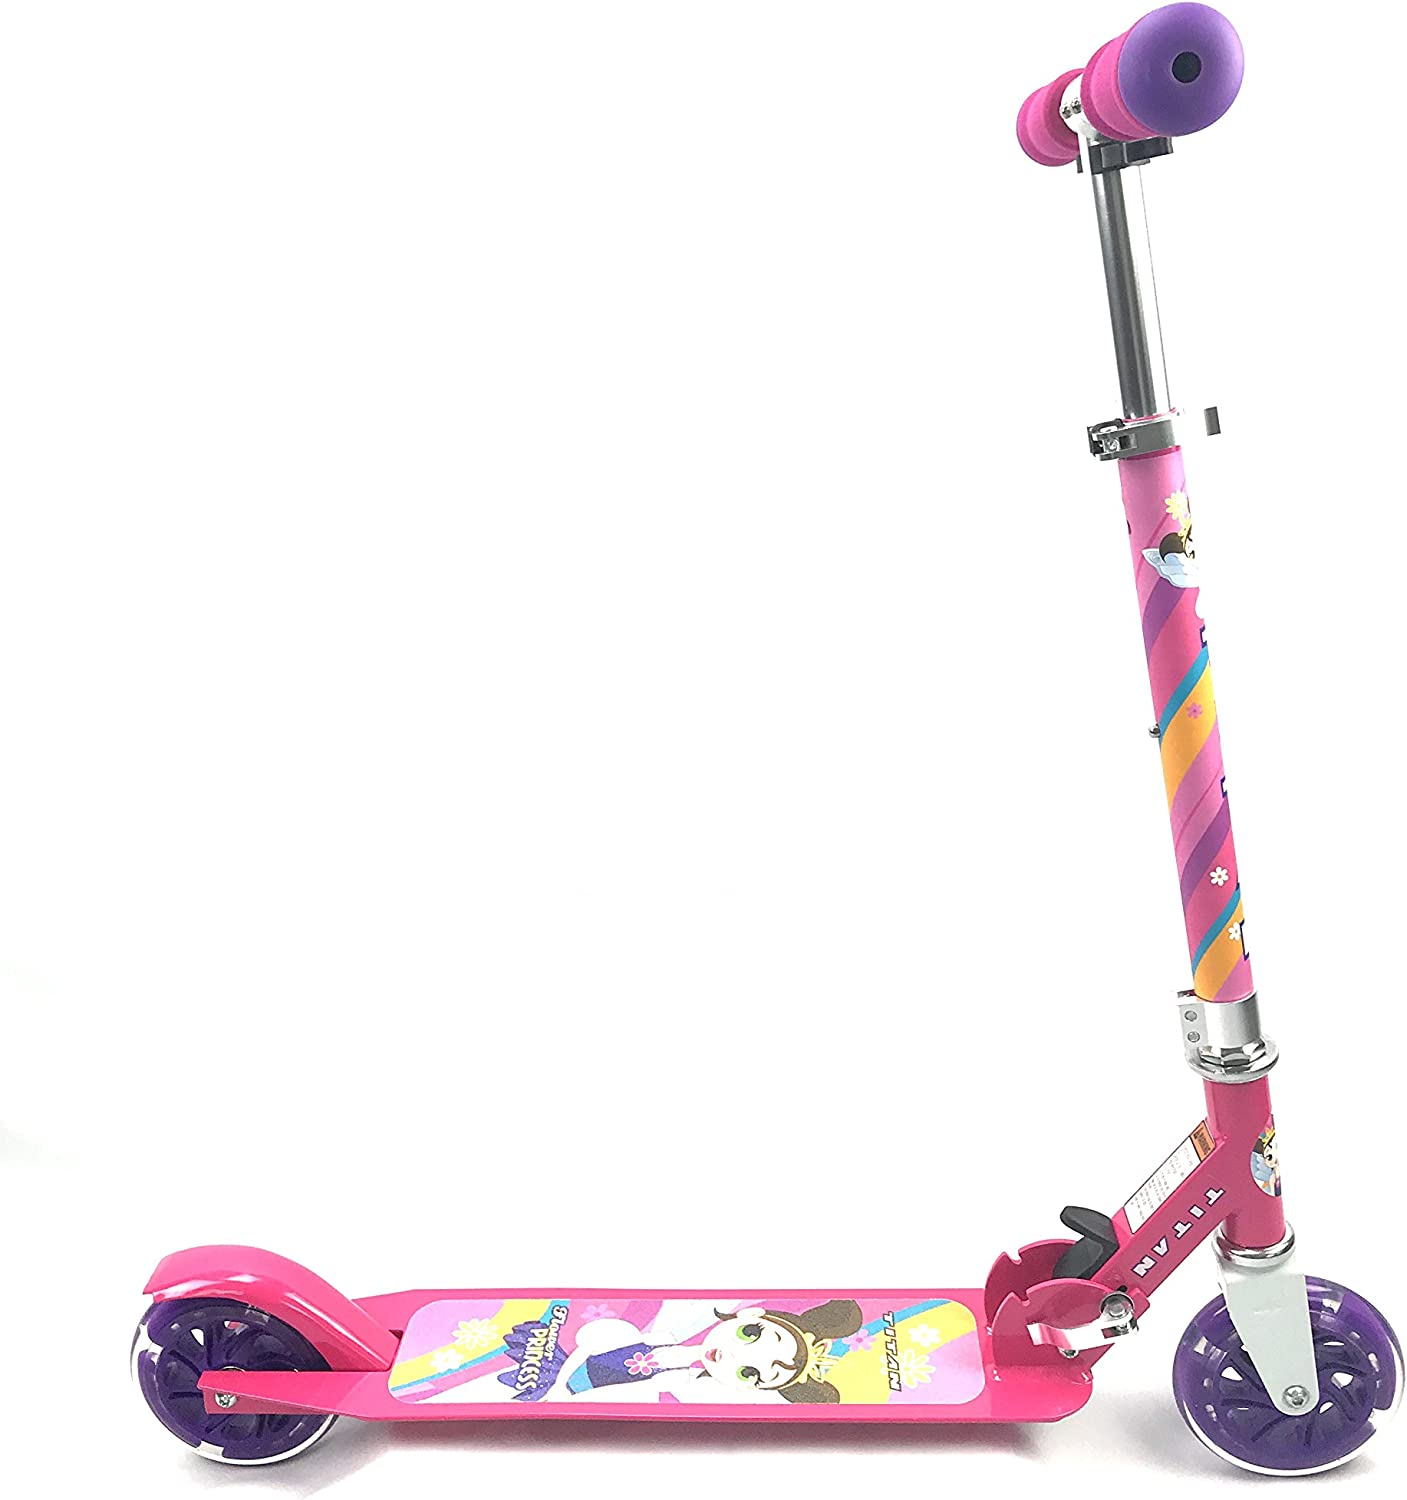 New Olym Kids Scooters 3 Wheel for Girls Big Boys Toddlers, 4 Adjustable Height Flashing Wheels Scooter with Extra Wide Deck Safety Brake Foldable System Ride Scooter for Children Ages 3-12